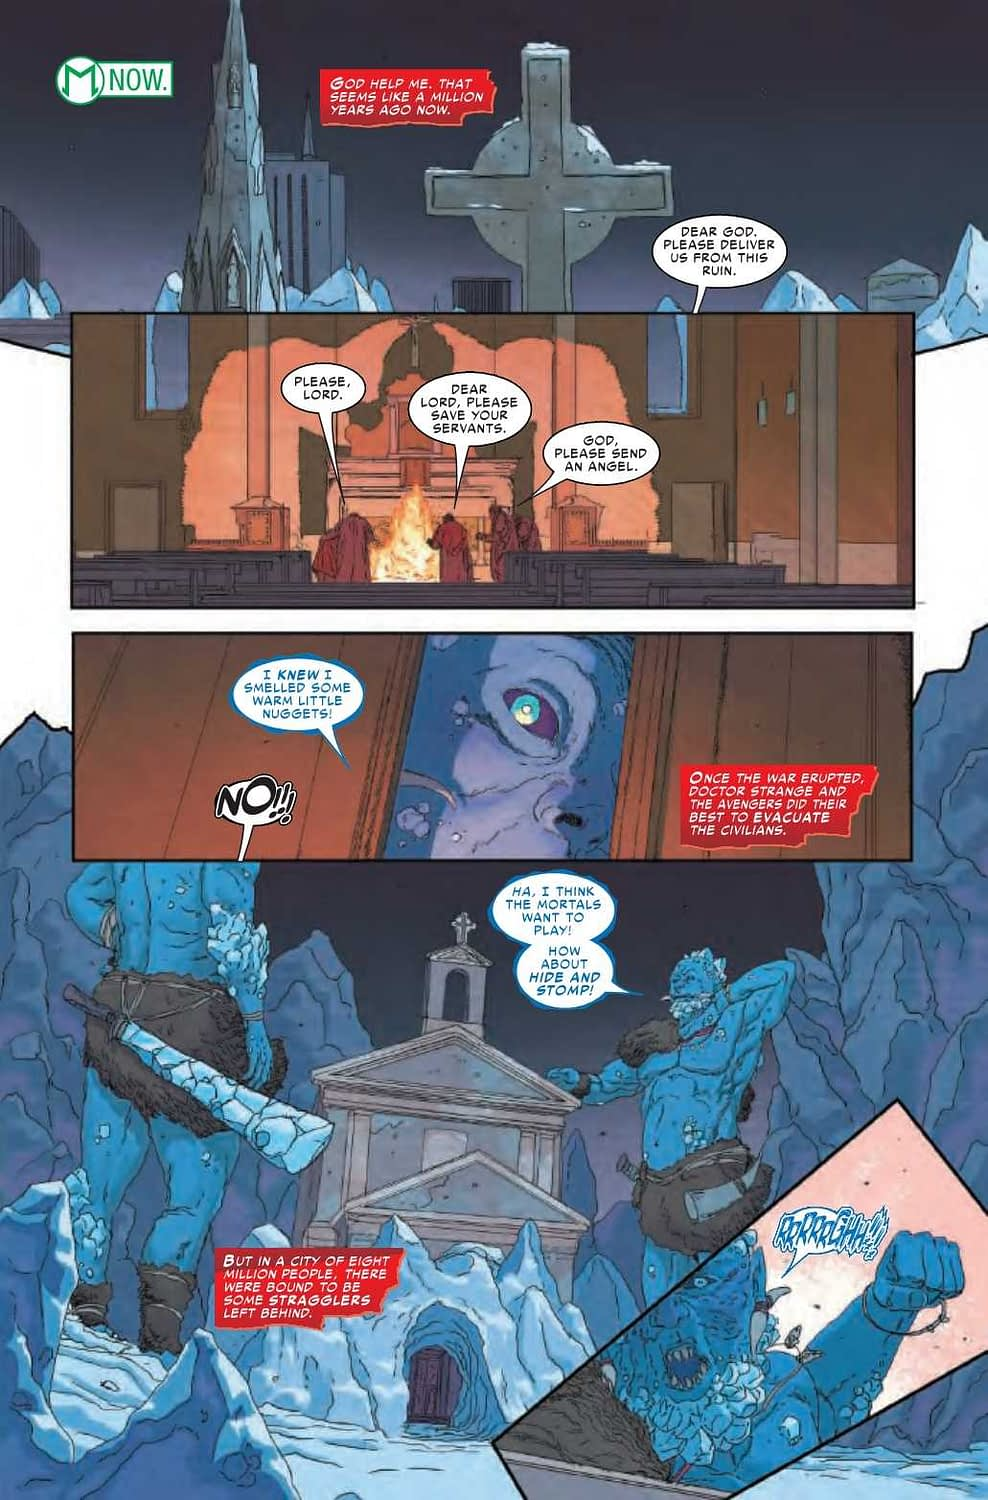 Marvel Makes a Major Change to Howard the Duck in War of the Realms: War Scrolls #1 (Preview)